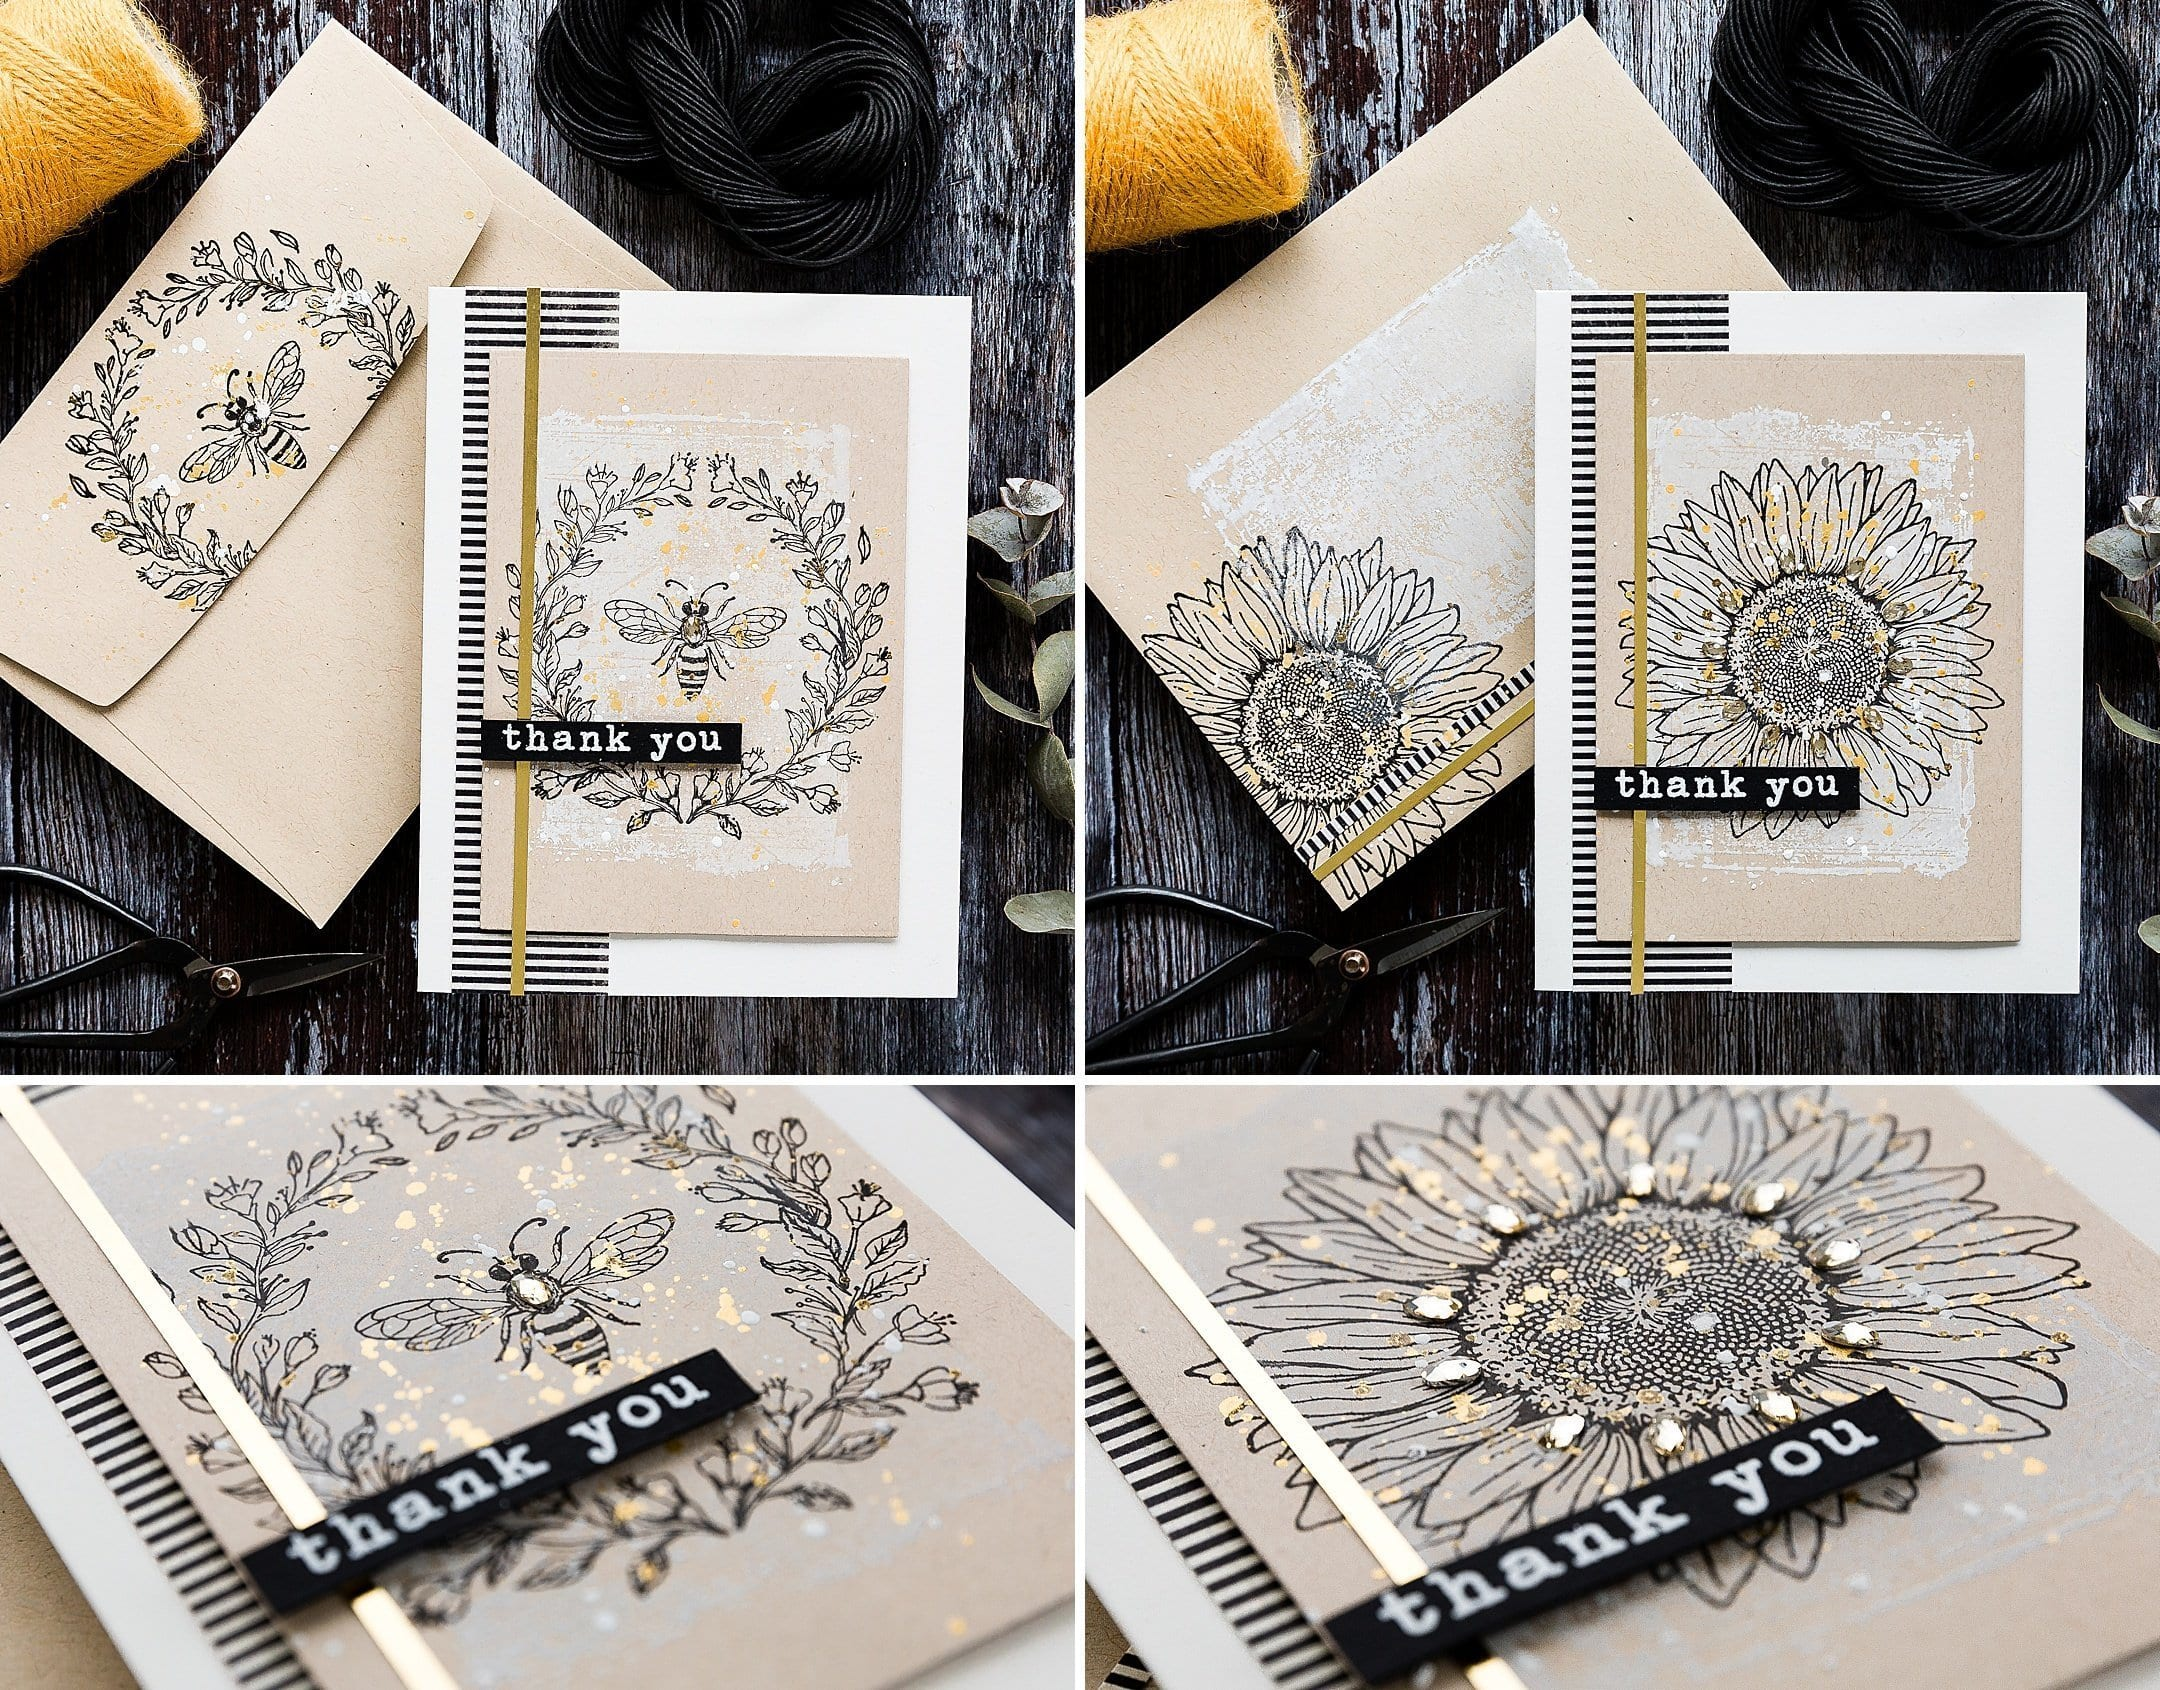 Simply stamped bee and sunflower handmade notecards by Debby Hughes using supplies from Hero Arts. Find out more here: https://limedoodledesign.com/2019/05/hero-arts-45th-birthday-blog-hop-simply-stamped-notecards/